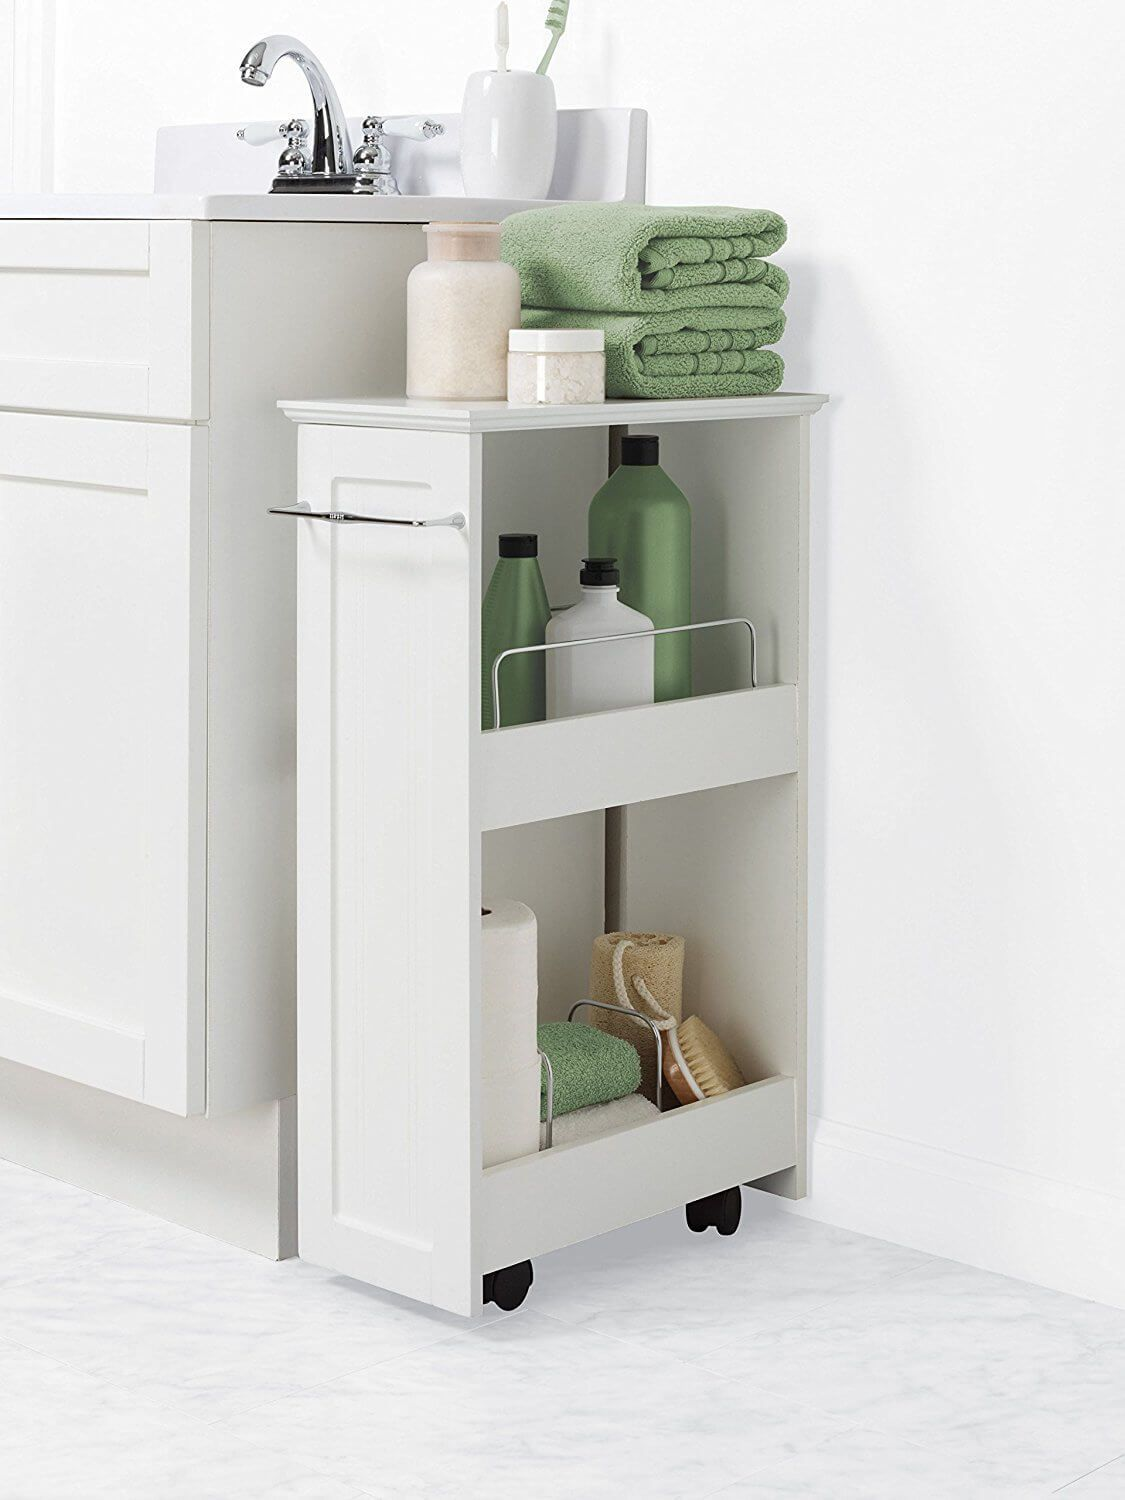 Small Cabinet for Bathroom Storage - top Rated Interior Paint Check ...